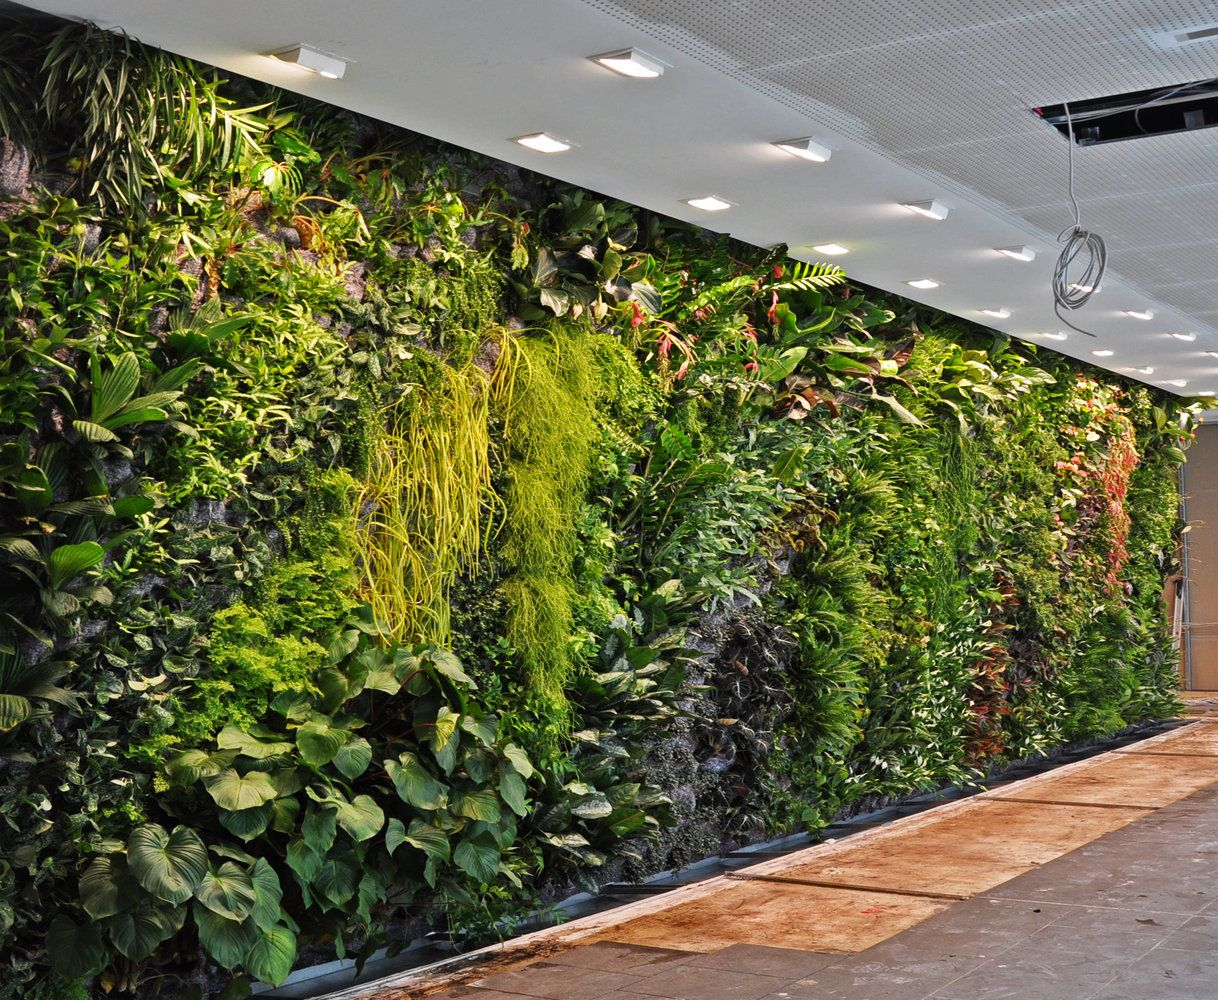 17 amazing vertical garden designs vertical garden for Indoor garden design pictures